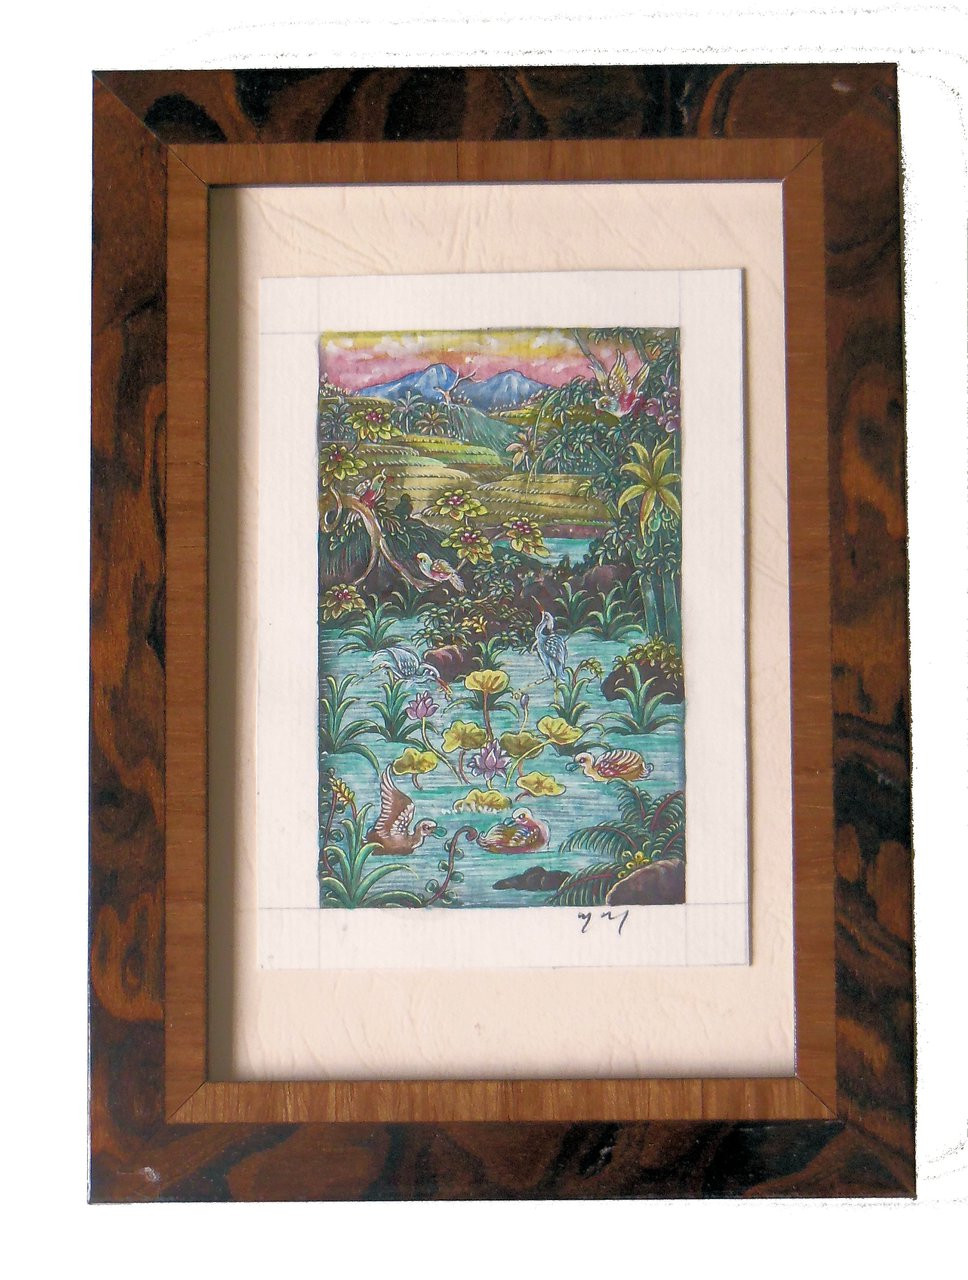 Colorful imaginary landscape from Bali, in Italian wood frame. Pen and ink